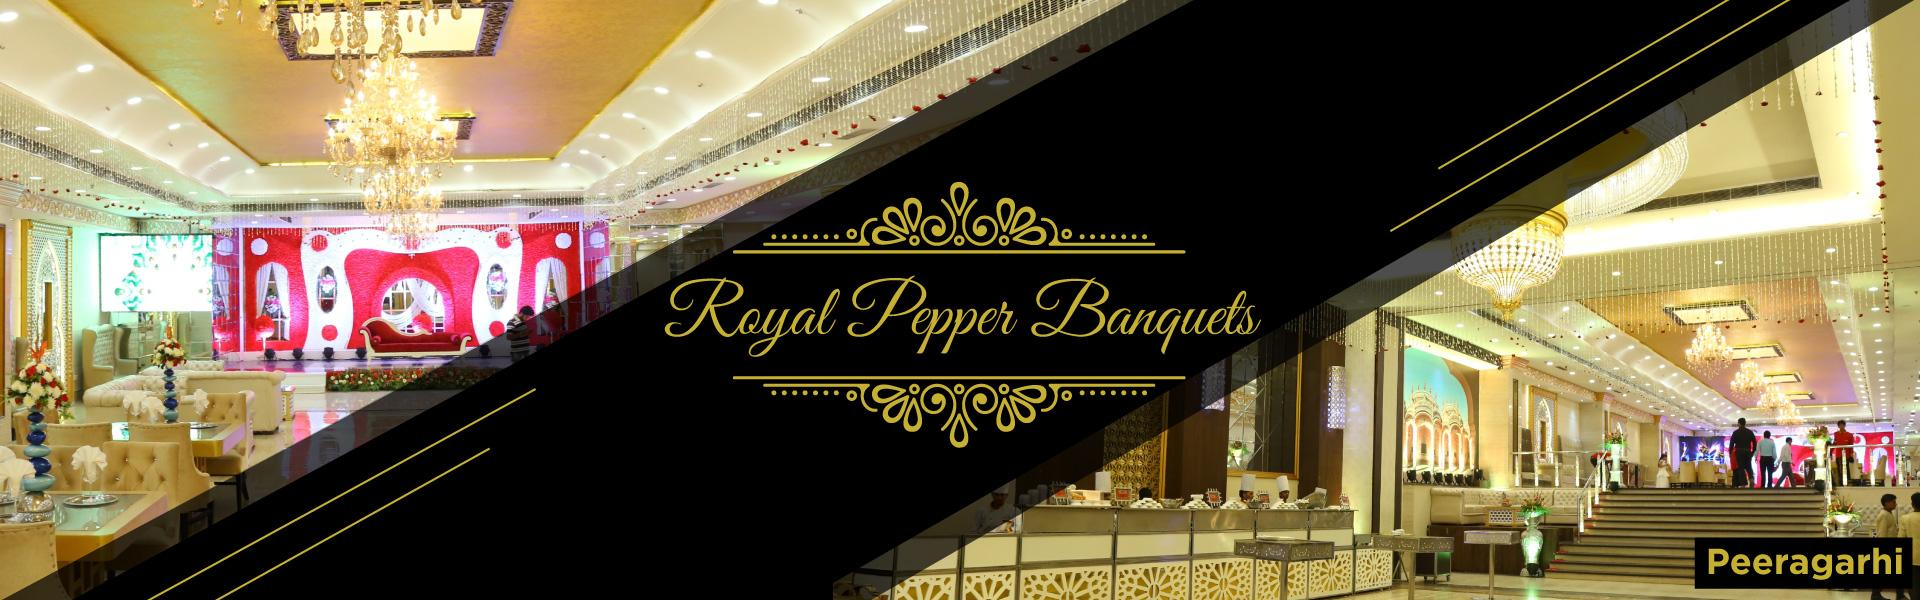 banquets in peeragarhi, Banquet Hall in peeragarhi, By Royal Pepper Banquets